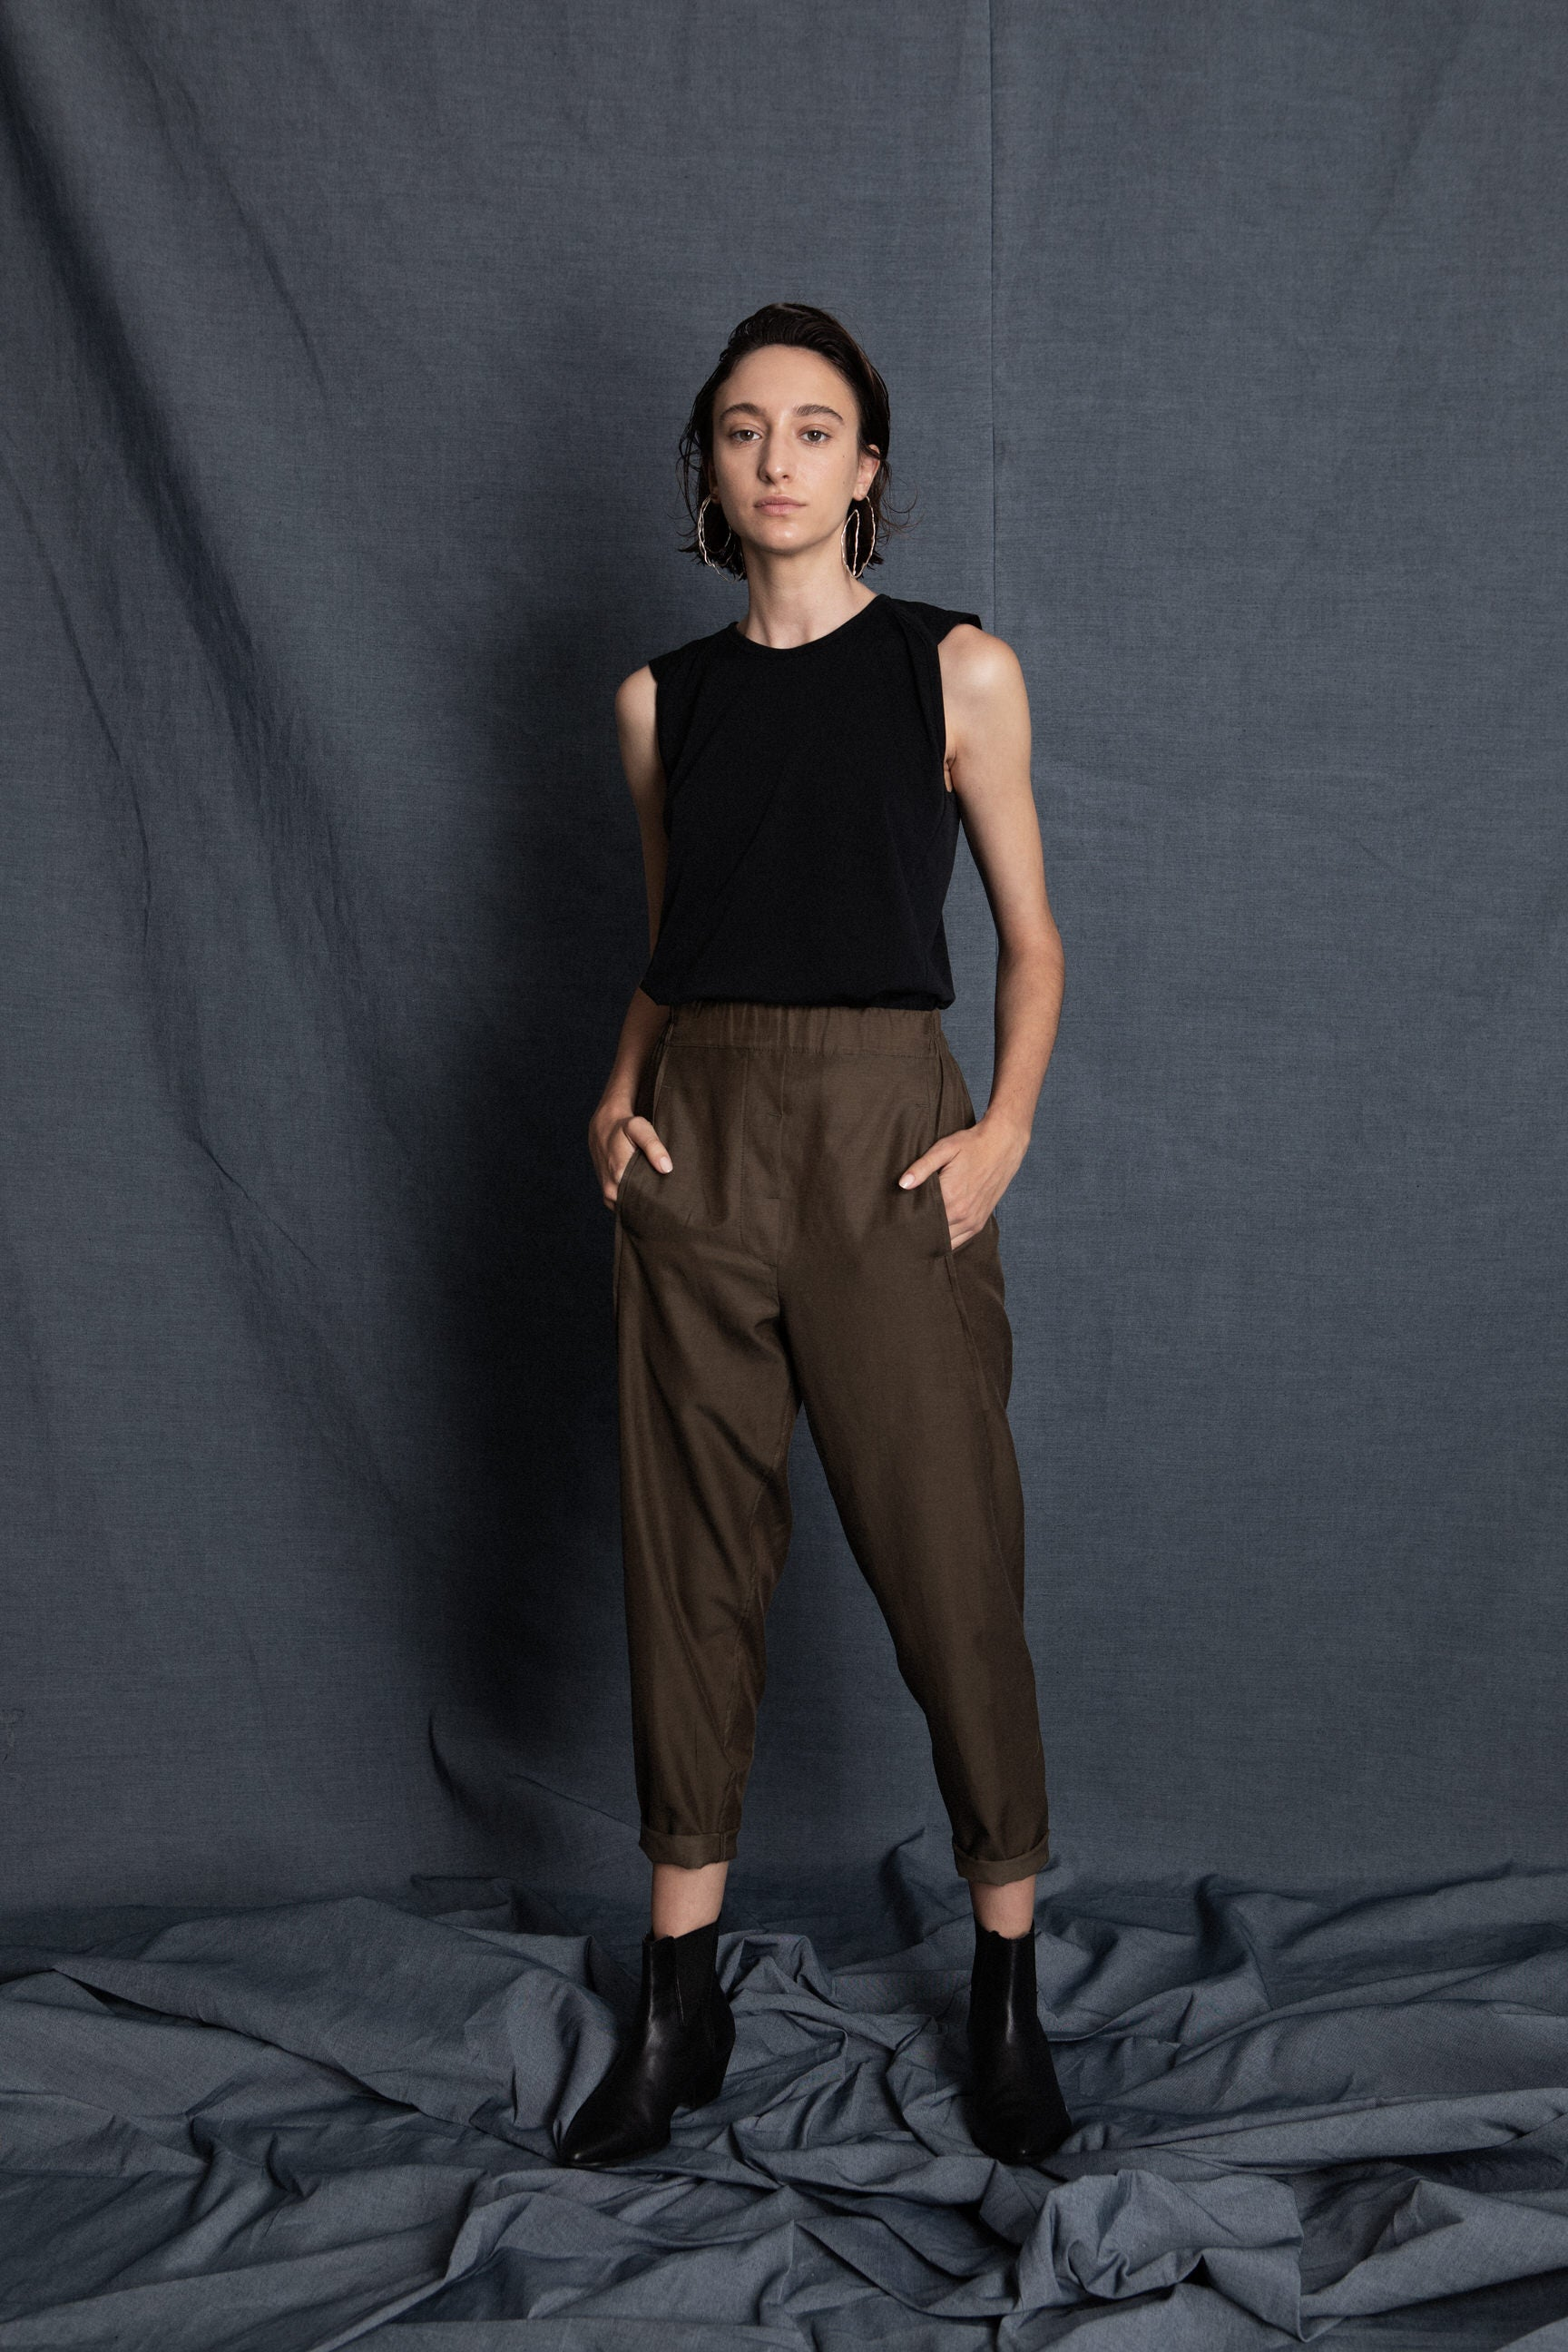 Max olive green pants - heroic-online